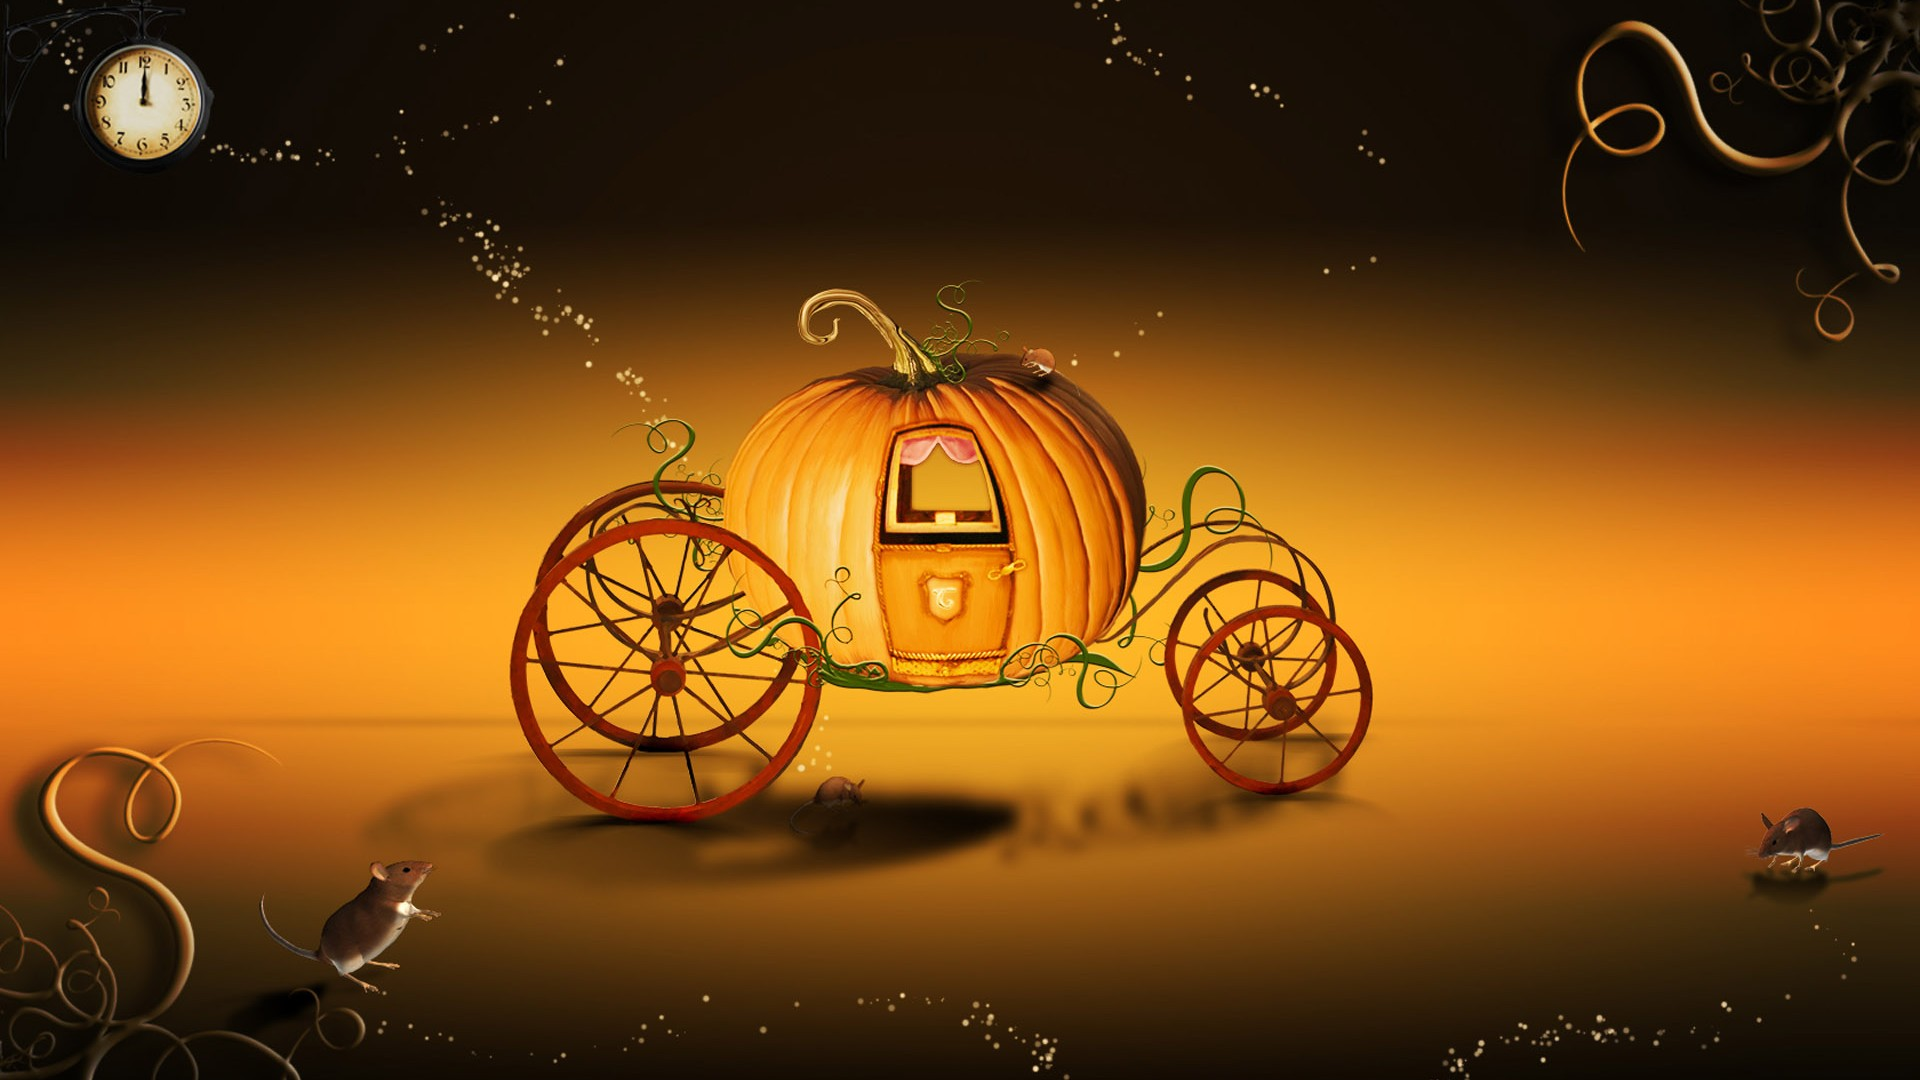 Great Wallpaper High Resolution Halloween - free-halloween-hd_014849236_295  Photograph_528779.jpeg